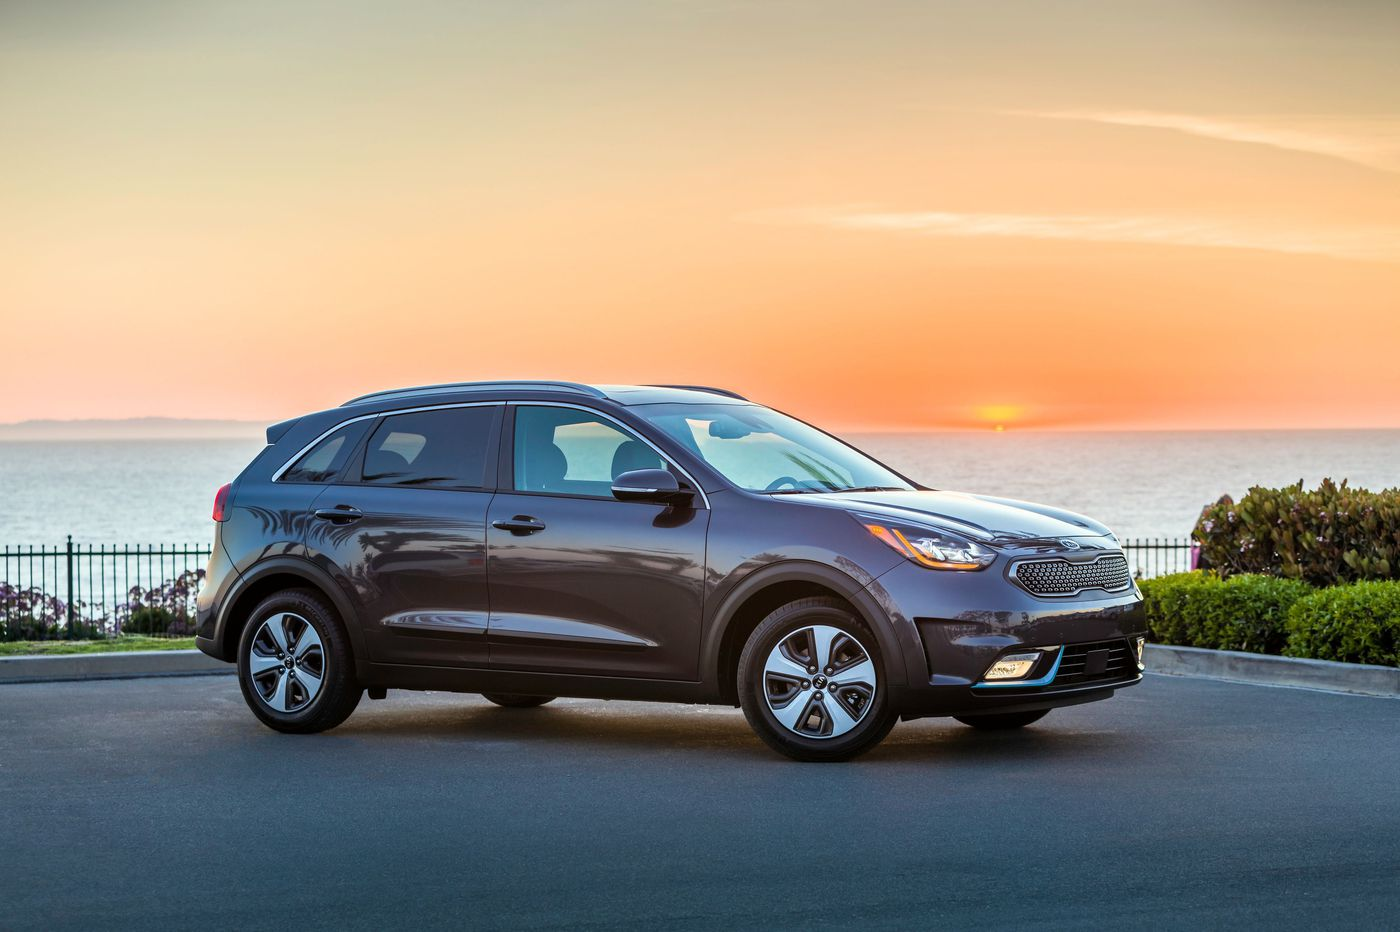 2019 Kia Niro PHEV offers space and savings — after you pay the admission price